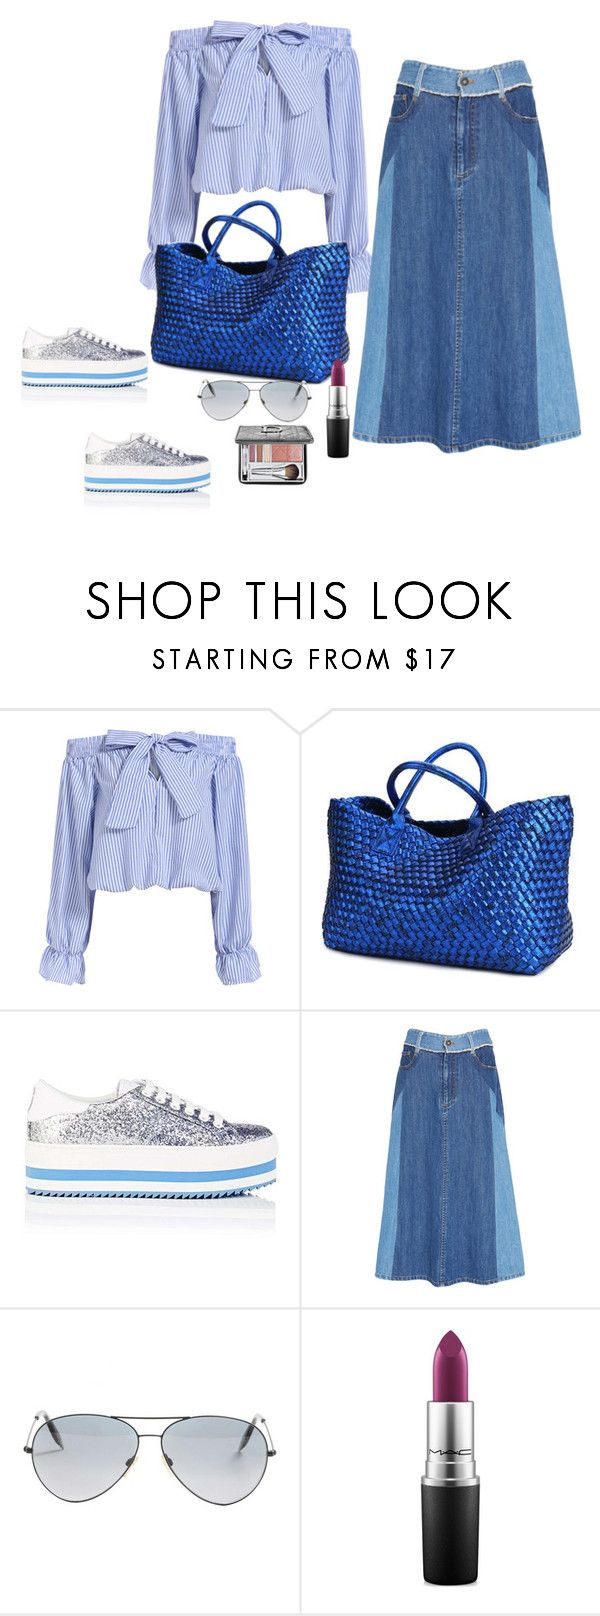 """""""Paseo de la tarde"""" by carolortiz ❤ liked on Polyvore featuring Marc Jacobs, Sea, New York, Victoria Beckham, MAC Cosmetics and Christian Dior"""